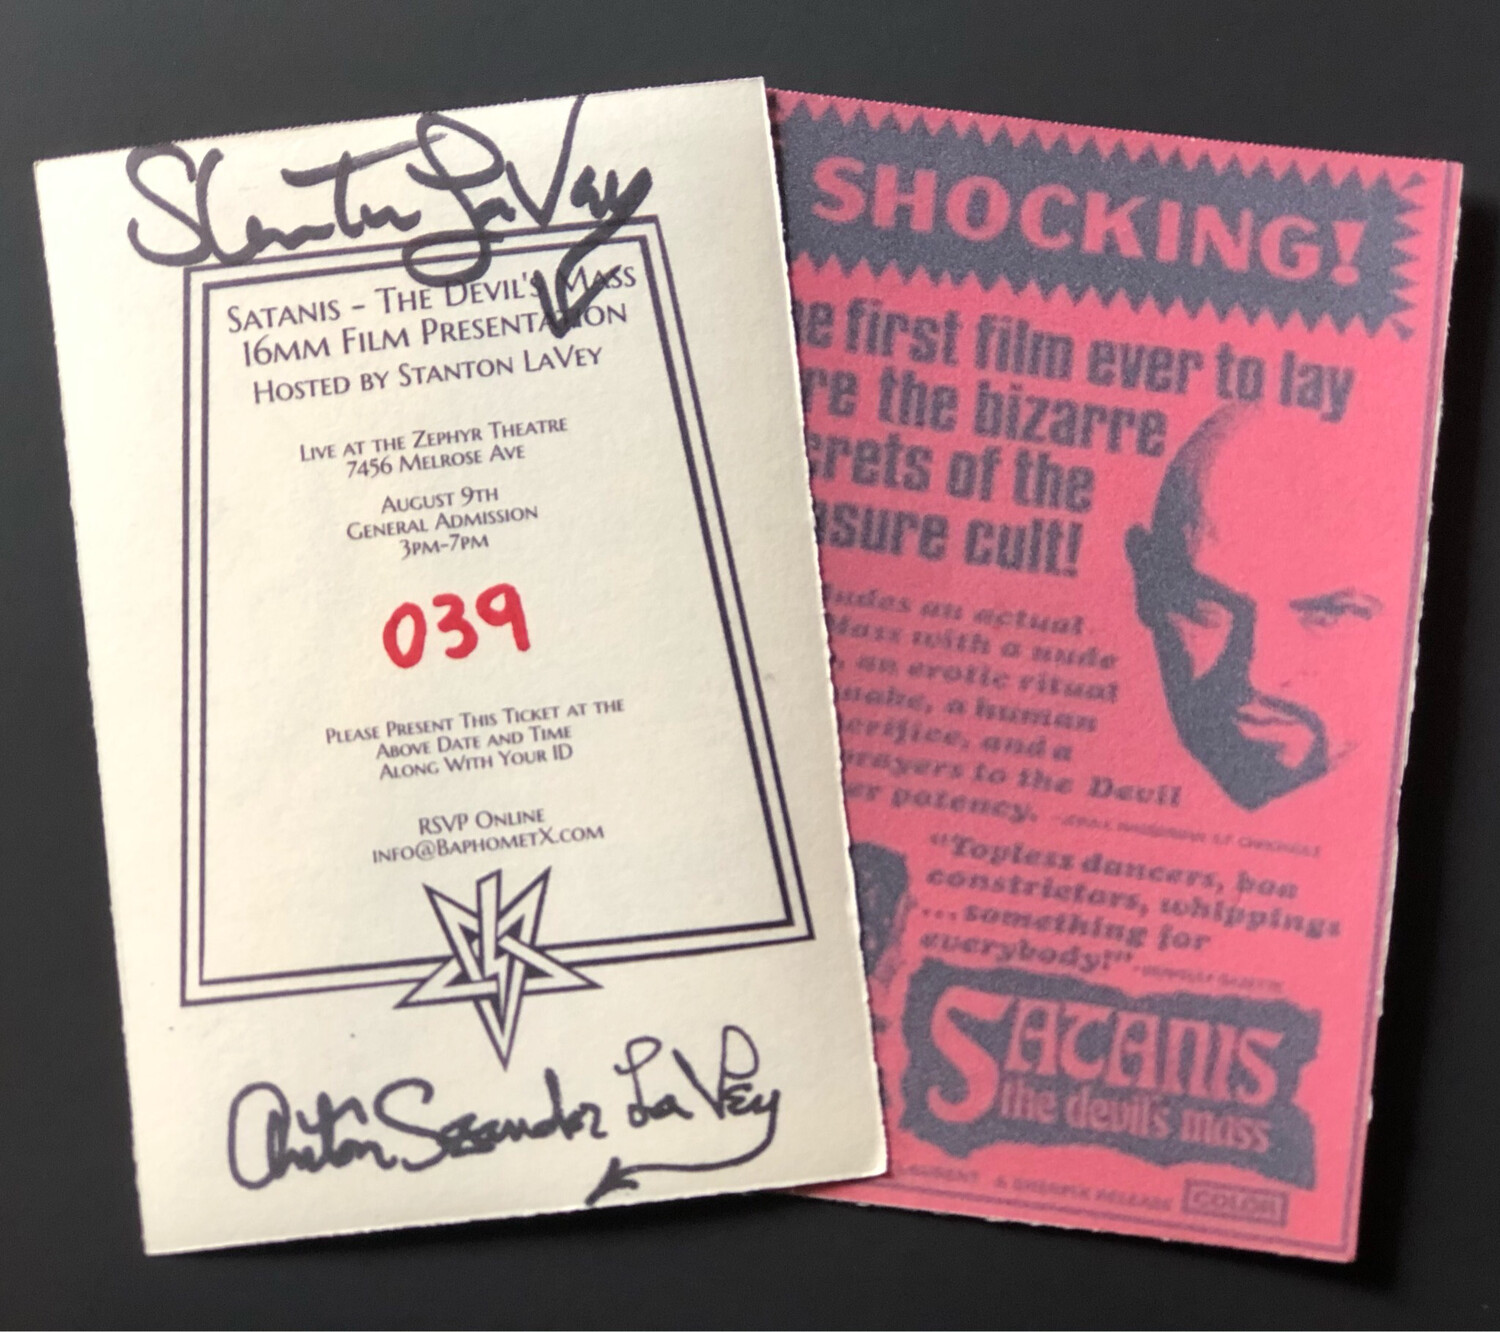 Pair Of Satanis Tickets Signed By Stanton LaVey